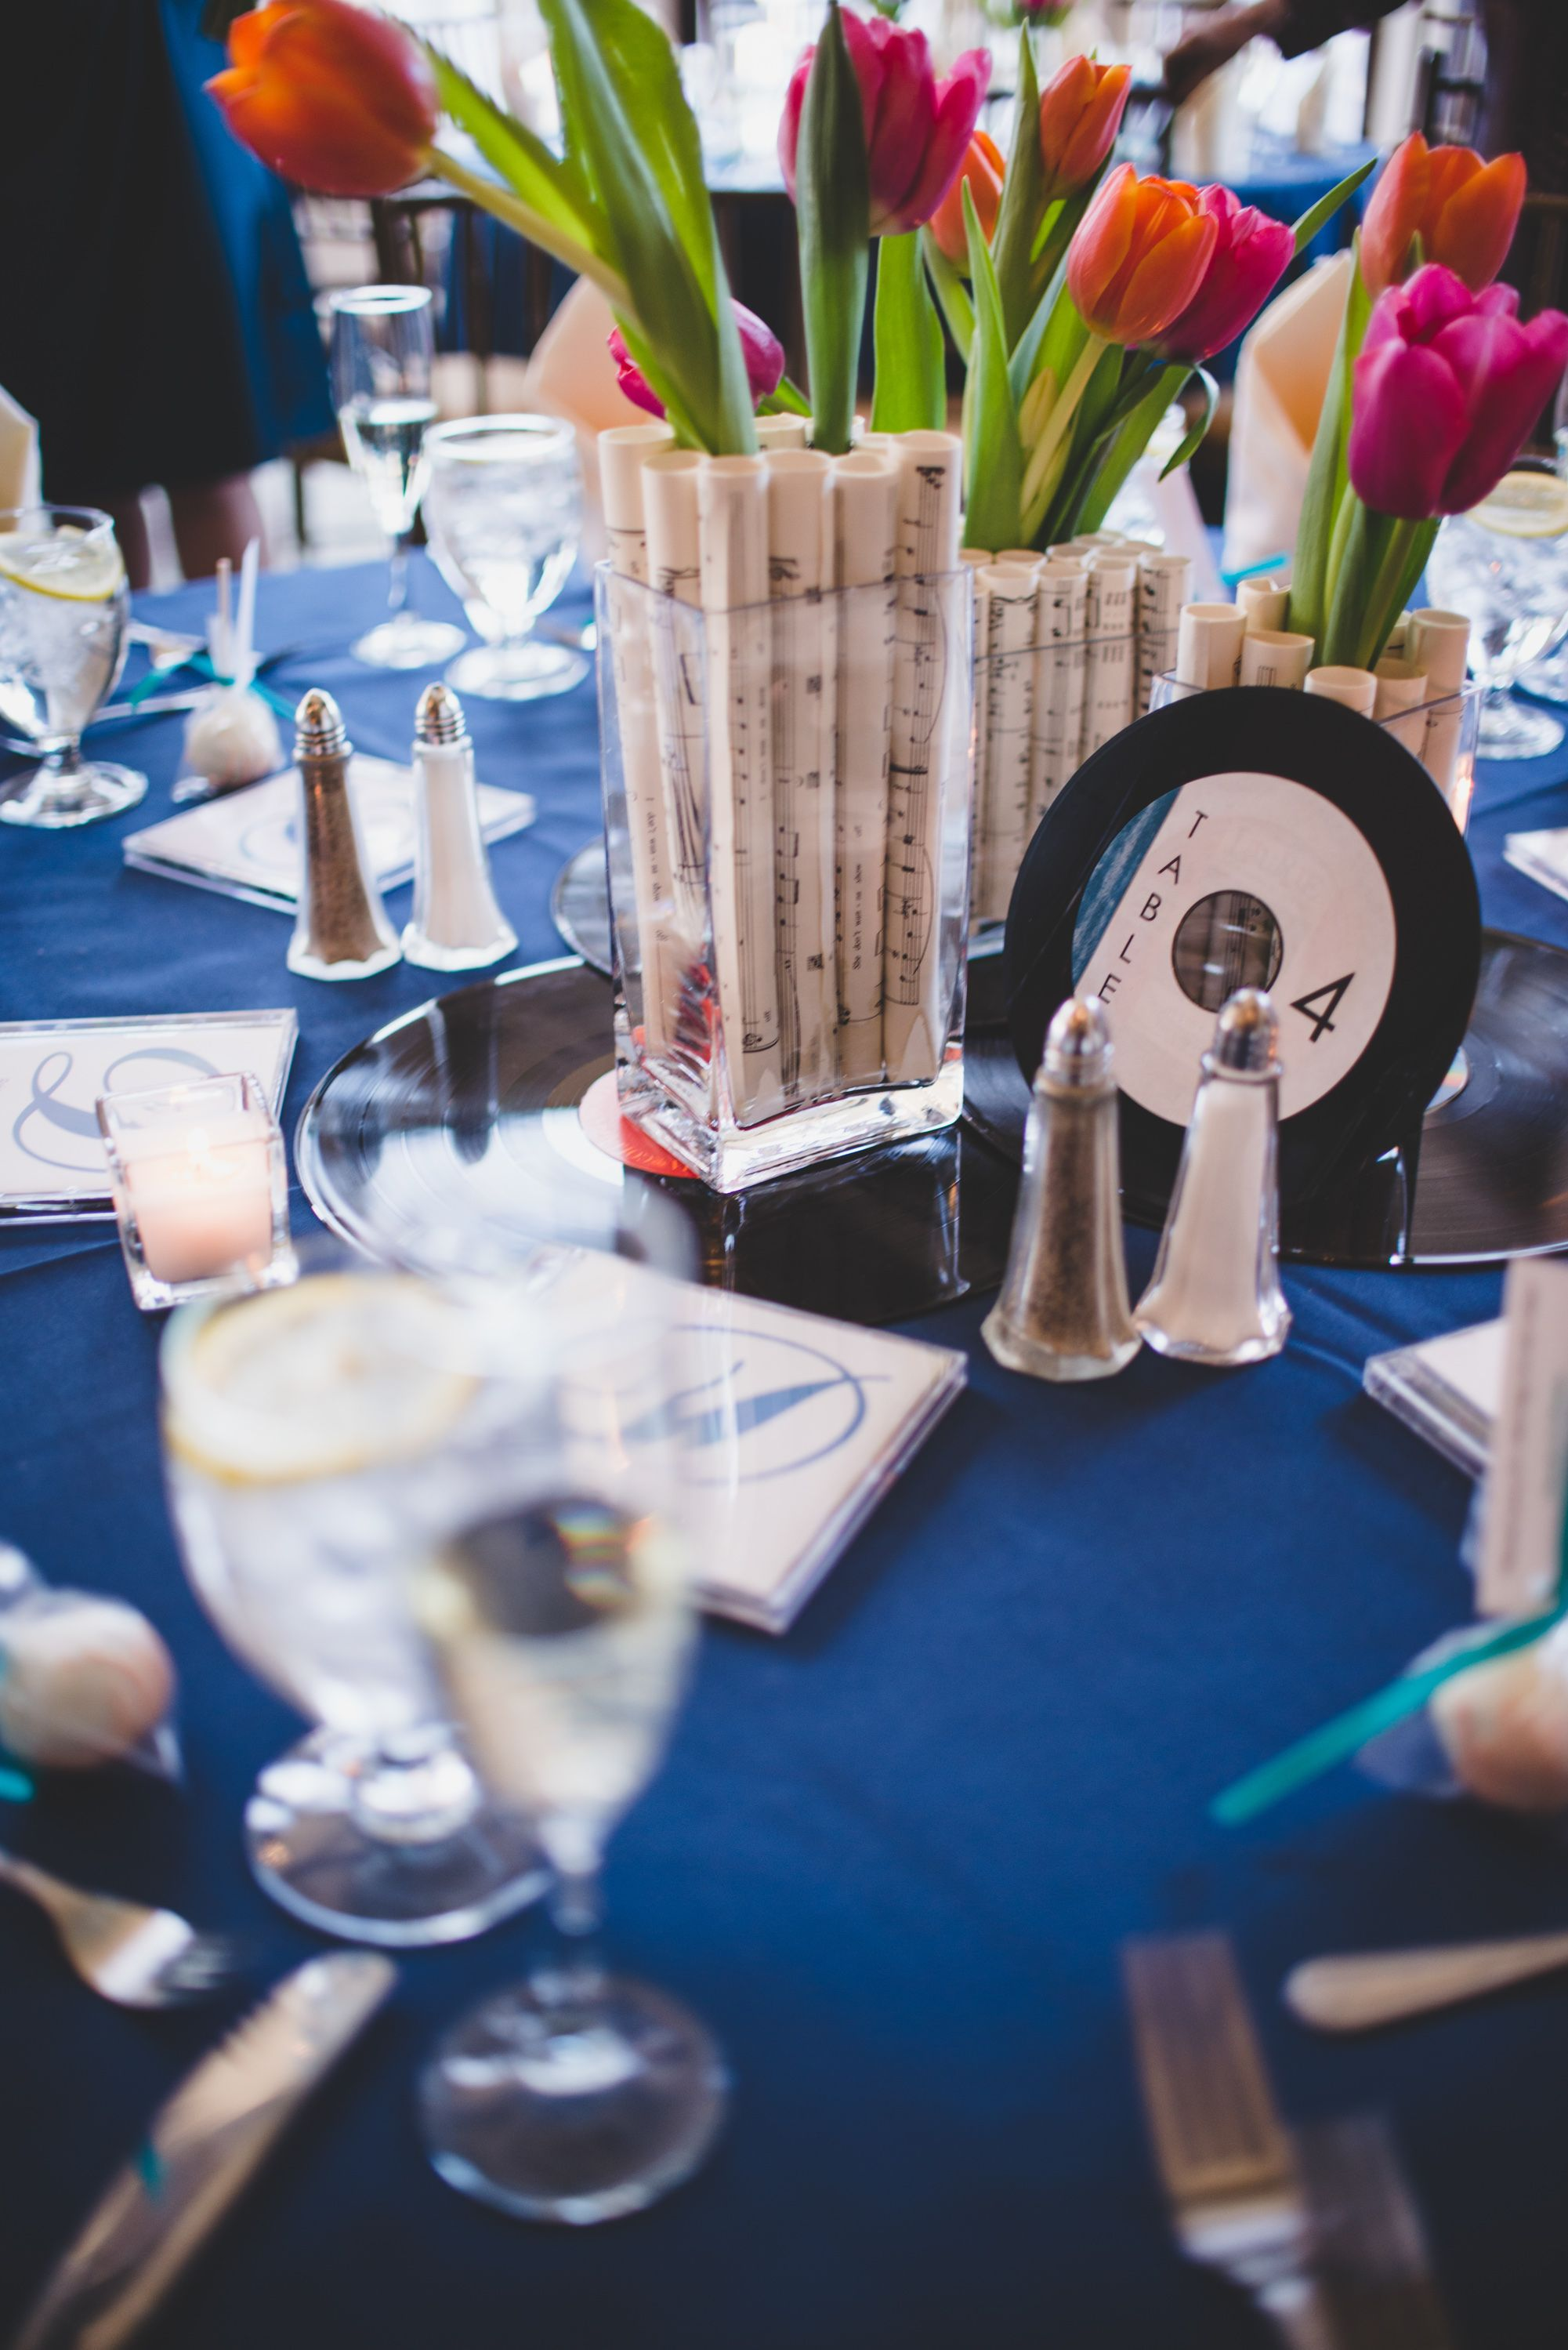 Music wedding centerpieces with tulips photo by www